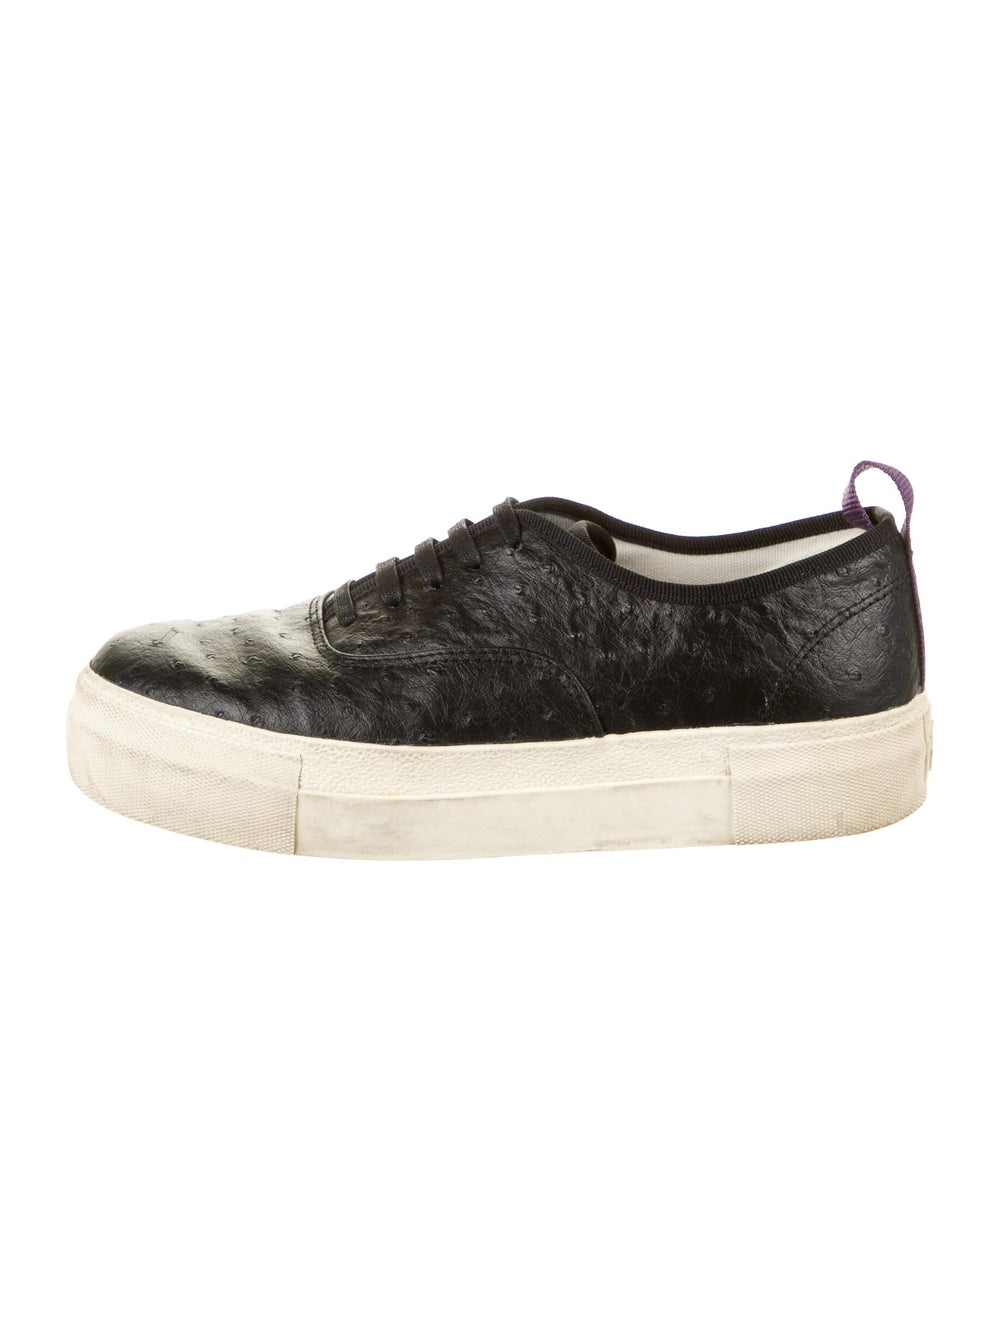 Eytys Ostrich Sneakers Black - image 1